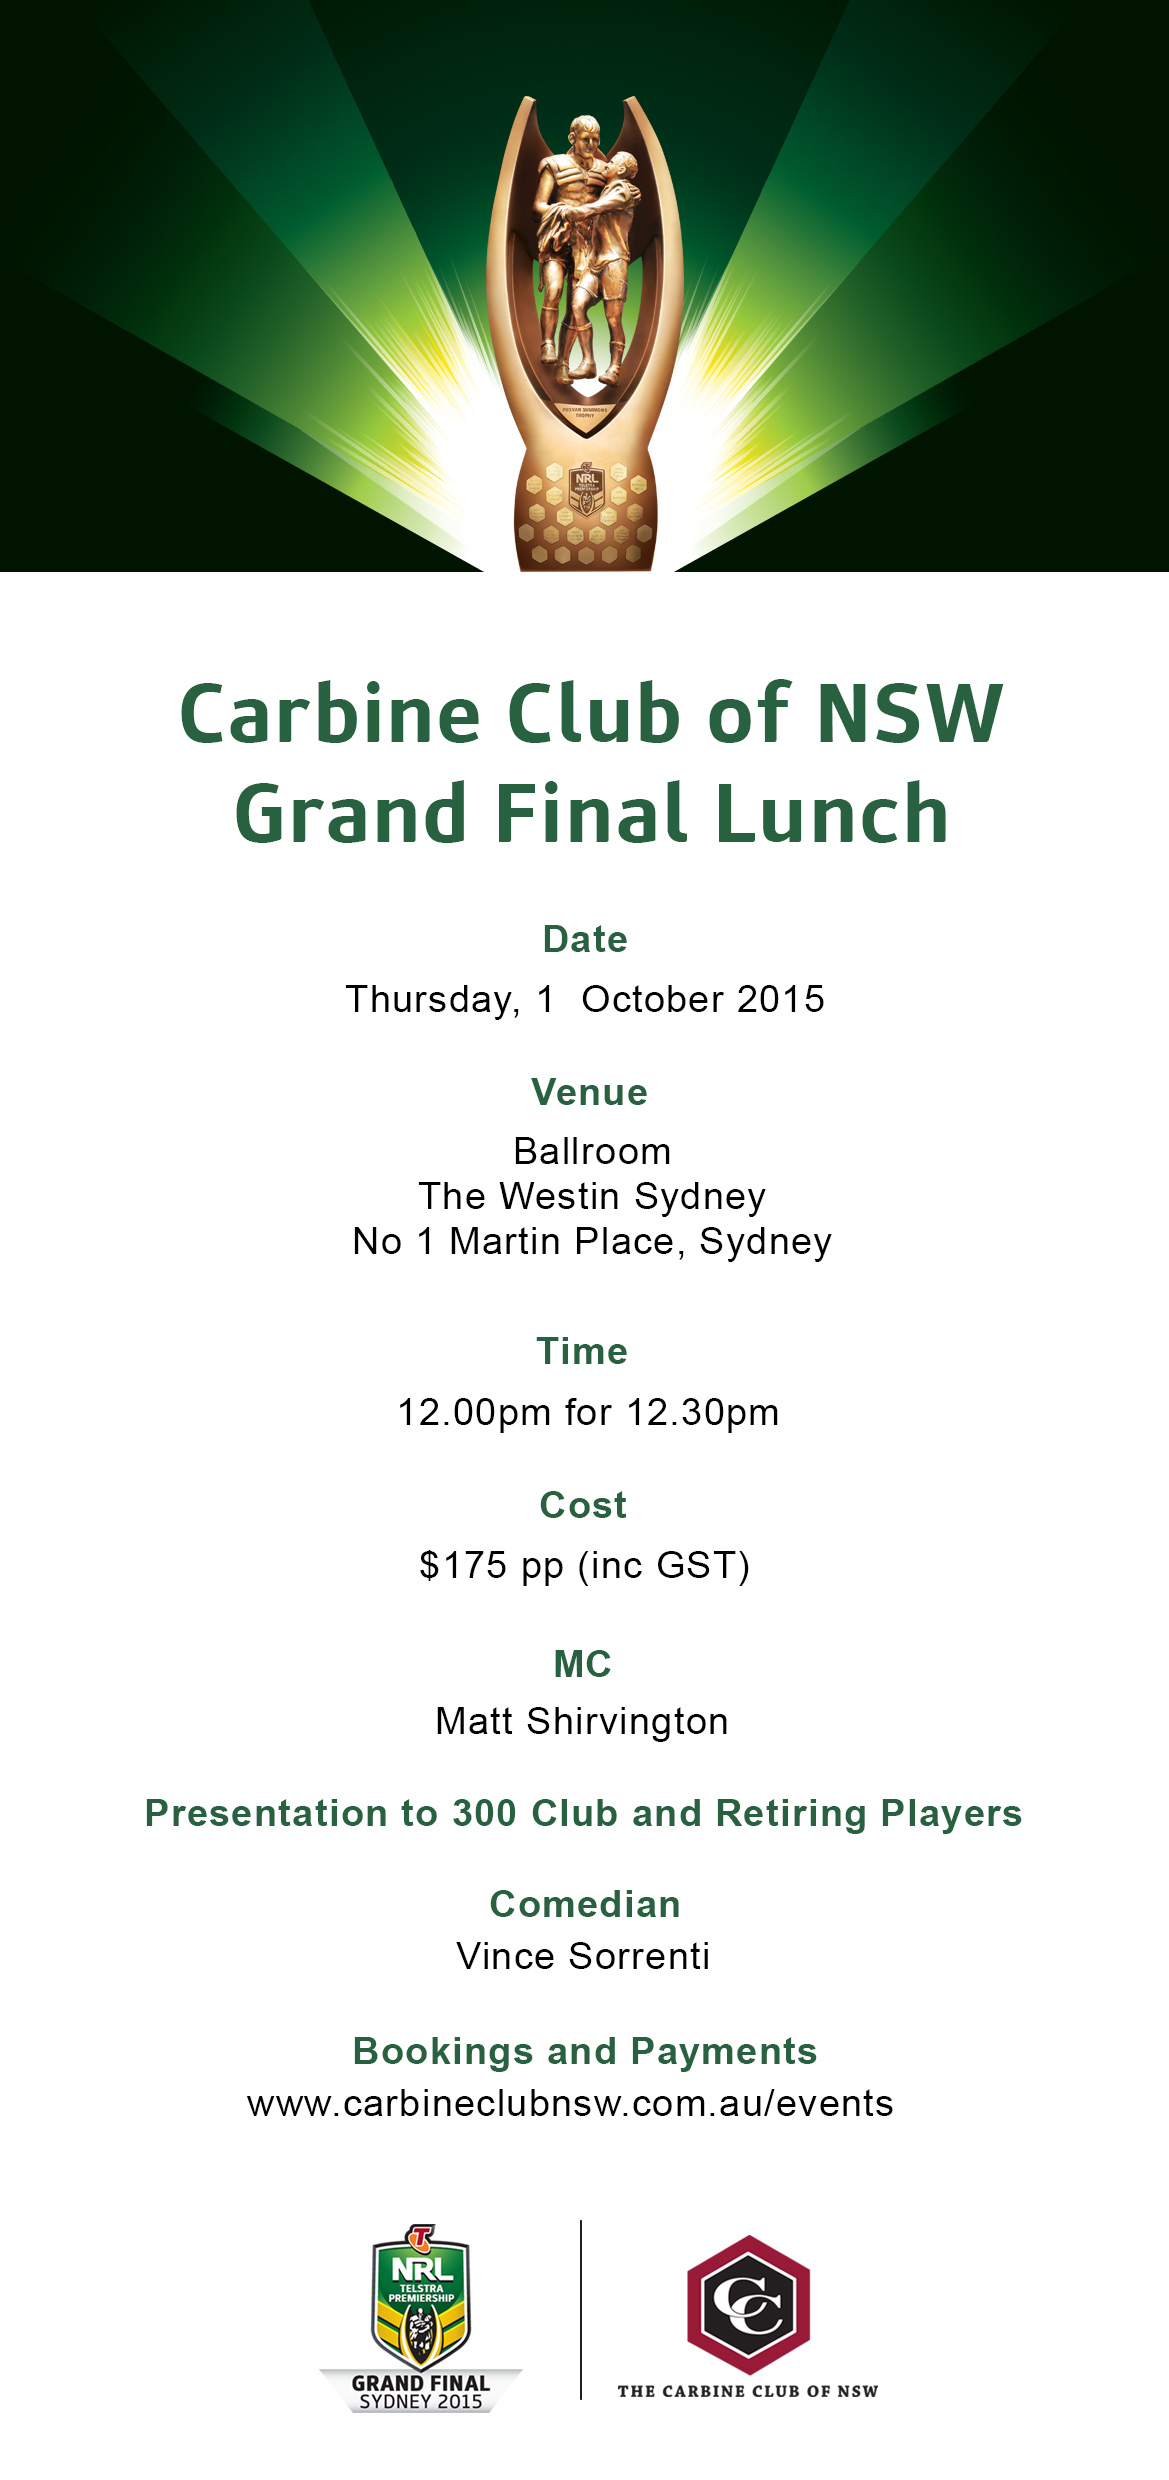 Carbine Club of NSW GF Lunch v2 cc logo w text